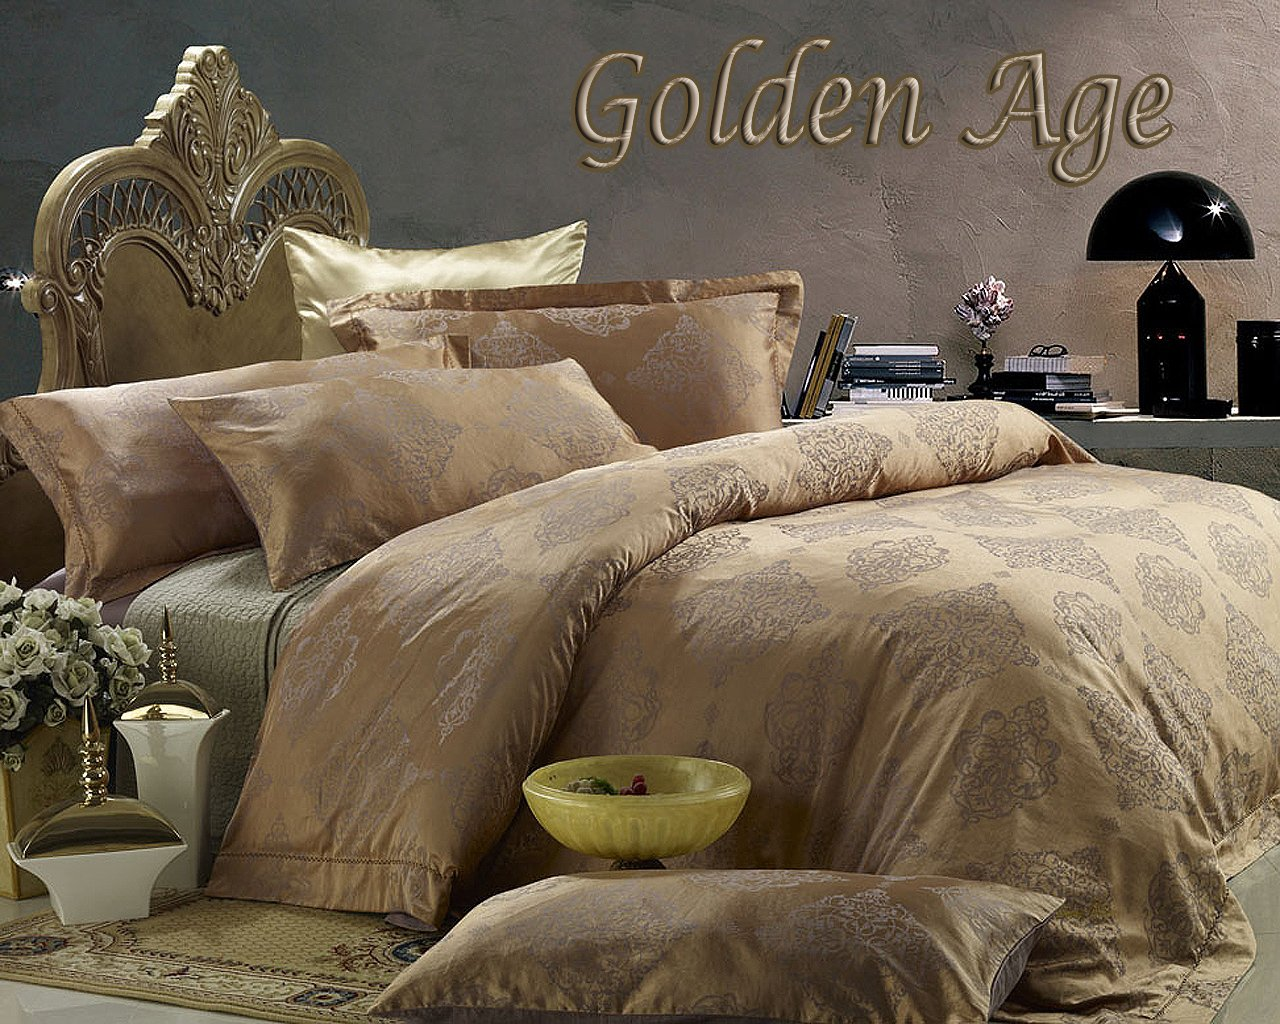 Golden Age By Dolce Mela 6 Pc King Size Egyptian Cotton